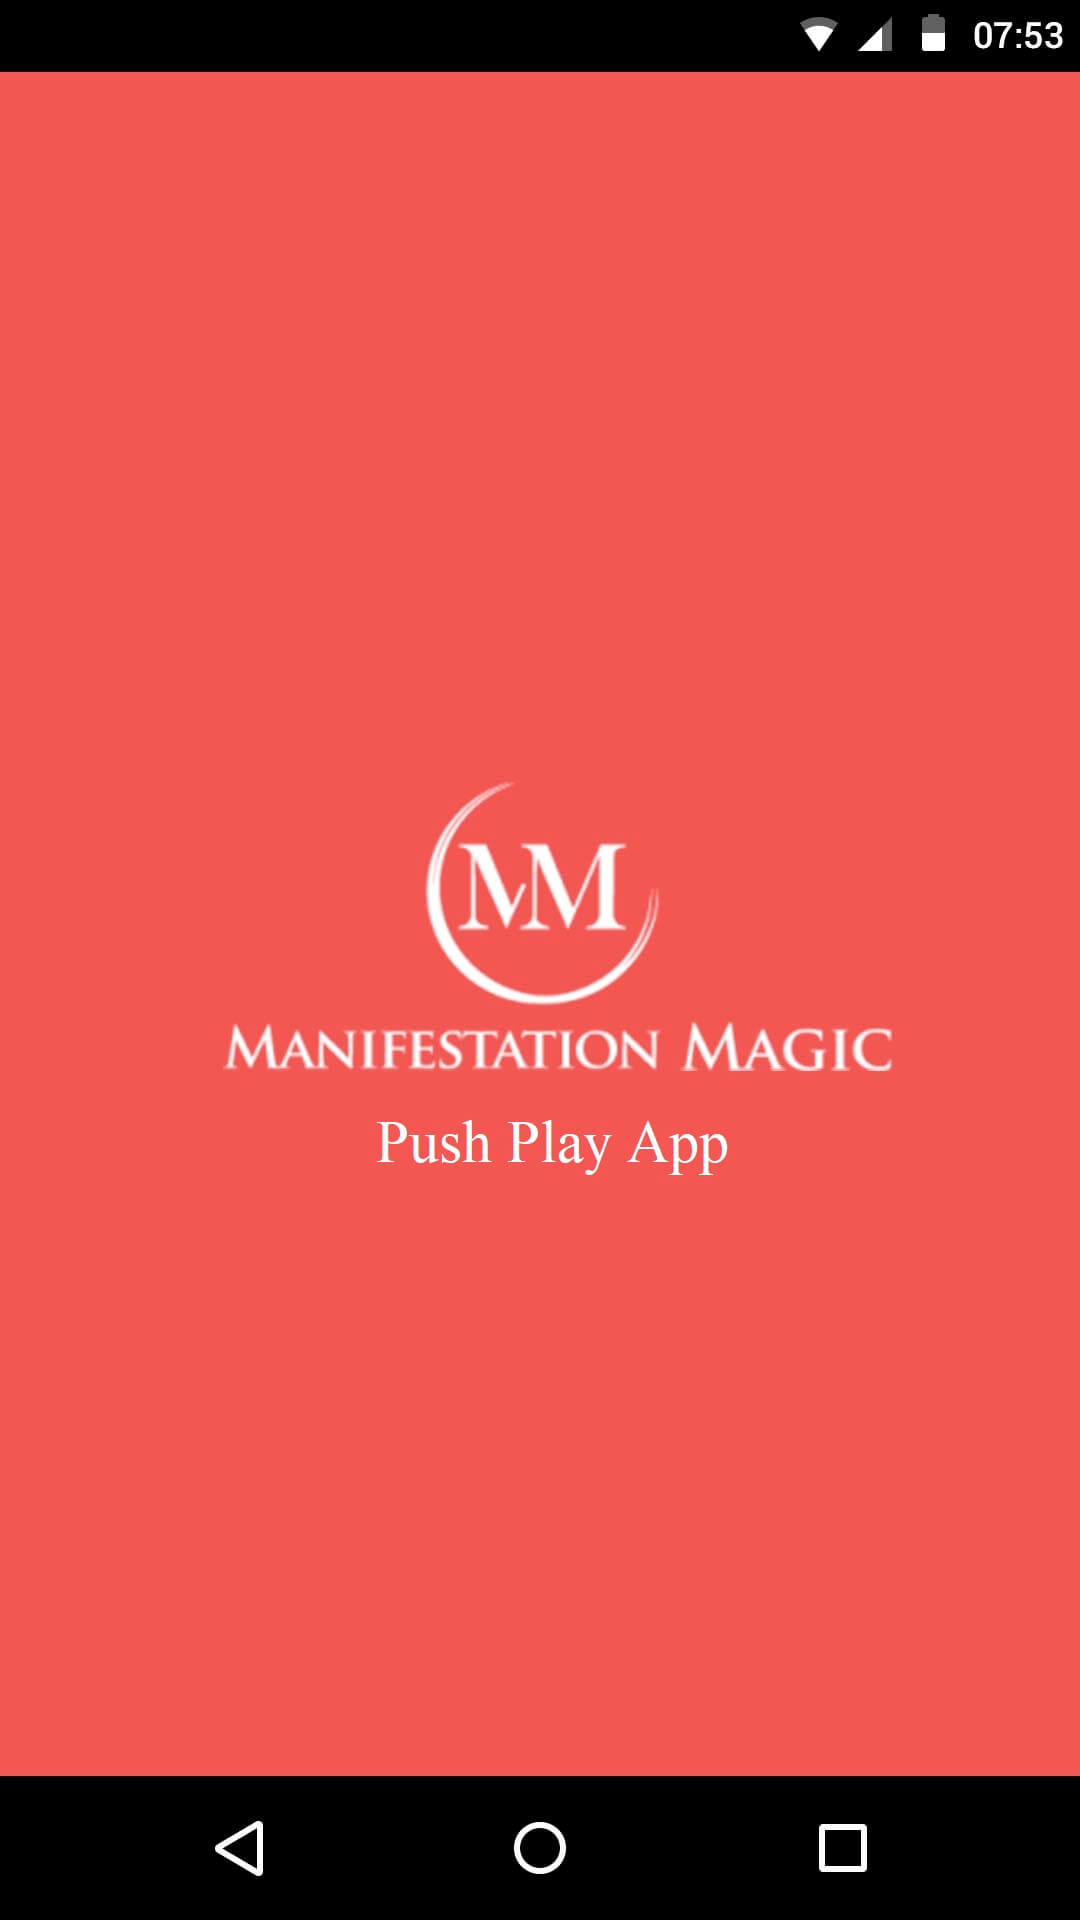 Push Play App - How To Magically Manifest